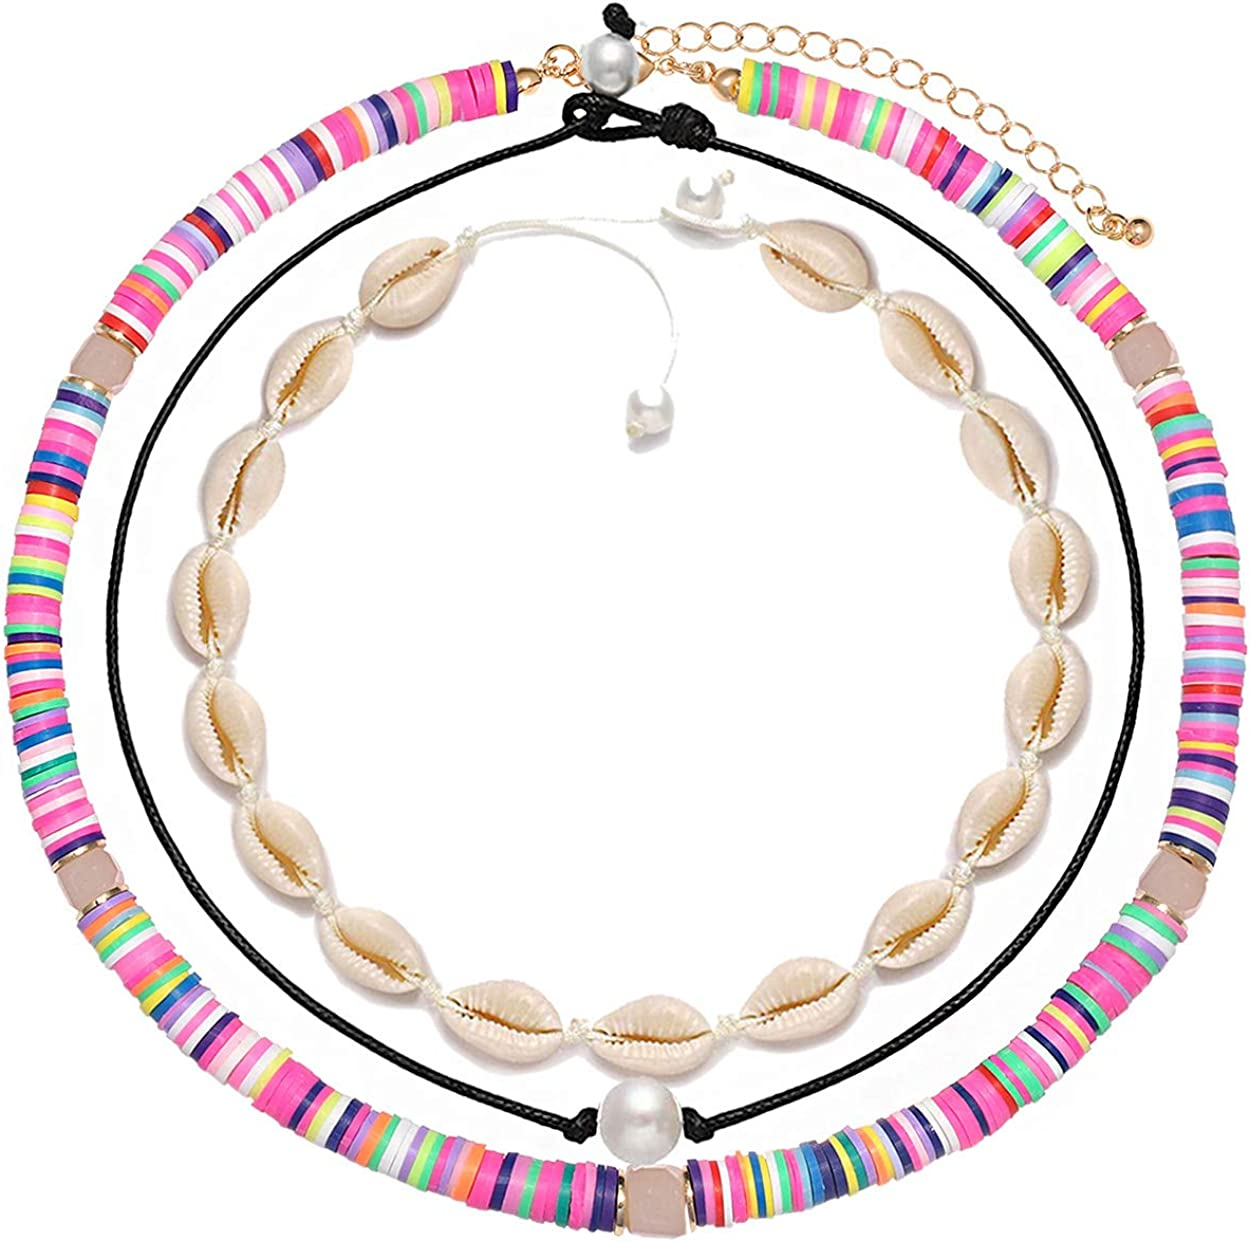 ANGLESJELL Heishi Surfer Choker Necklaces for Women Rainbow African Vinyl Disc Bead Necklace Hawaiian Cowrie Shell Necklace Summer Pearl Choker Necklaces Layering Beach Jewelry Set for Girls